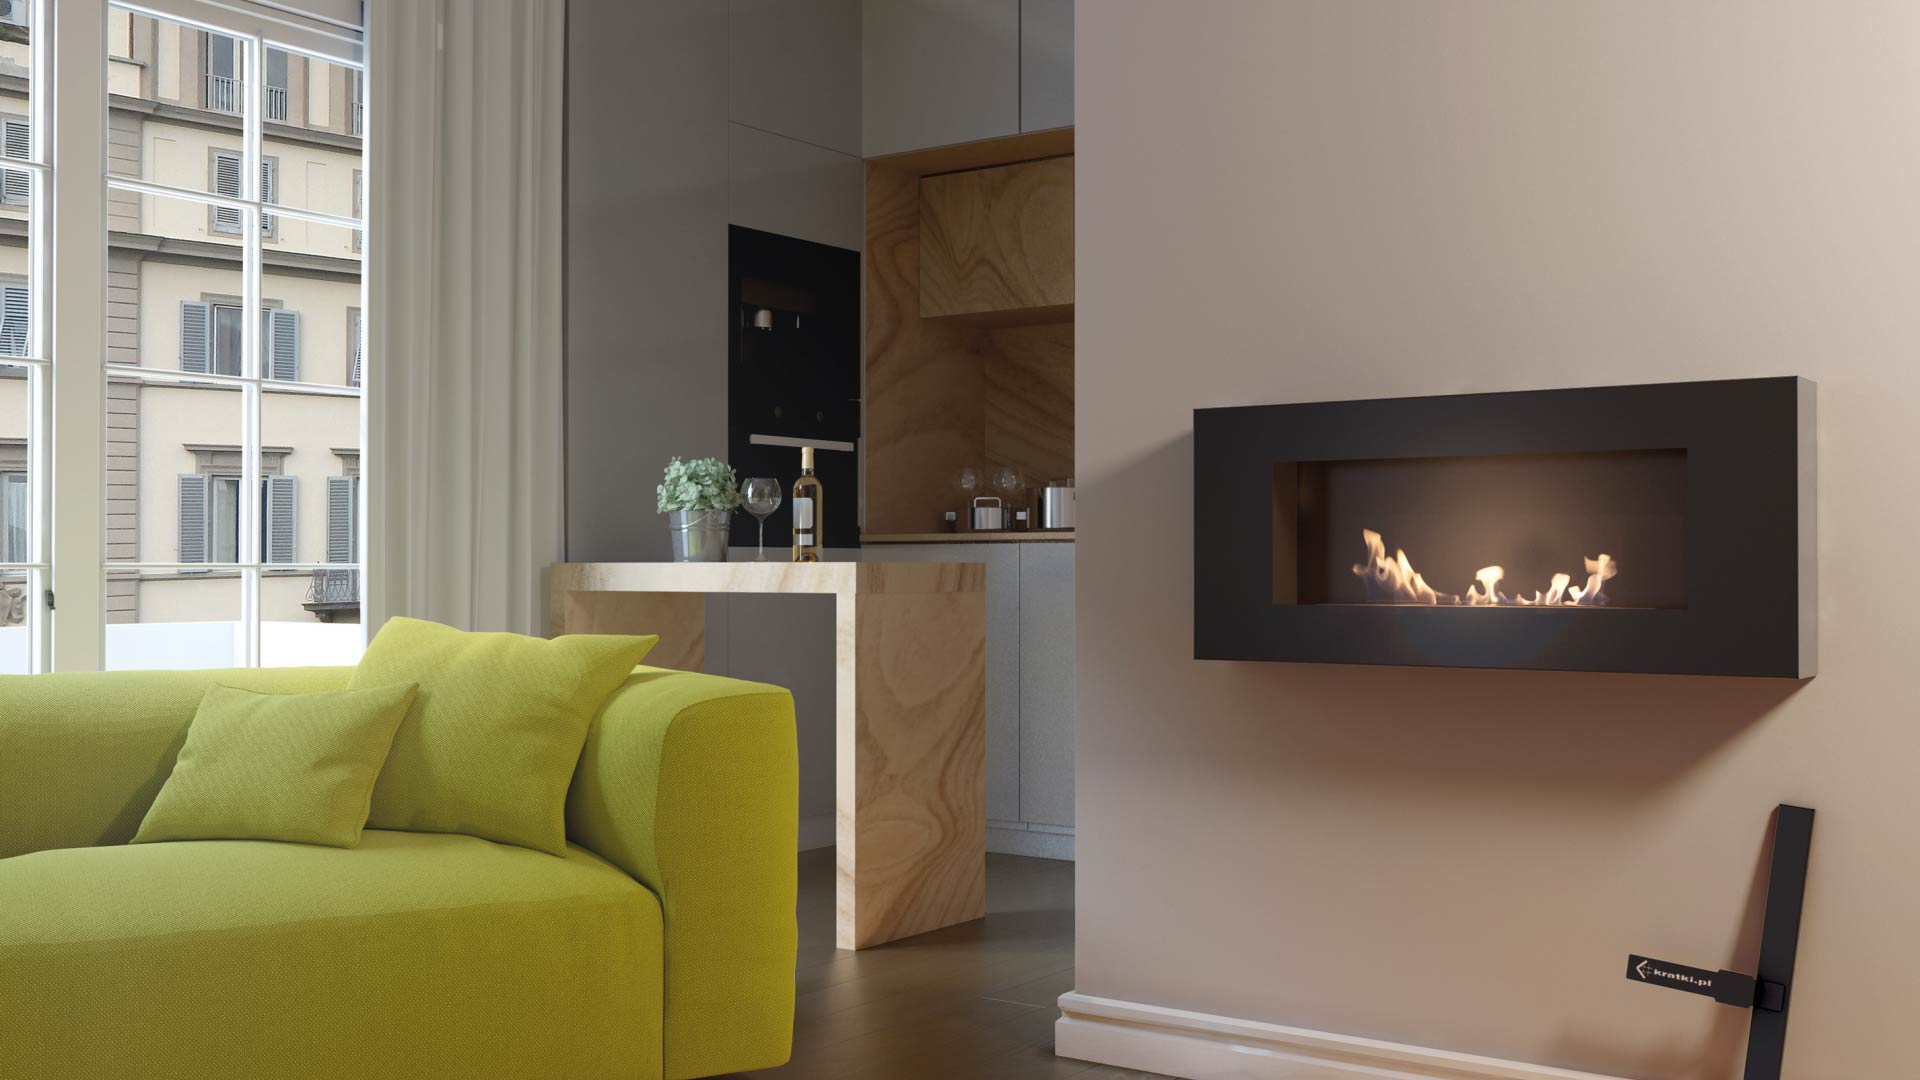 en af bio chimney fireplace without